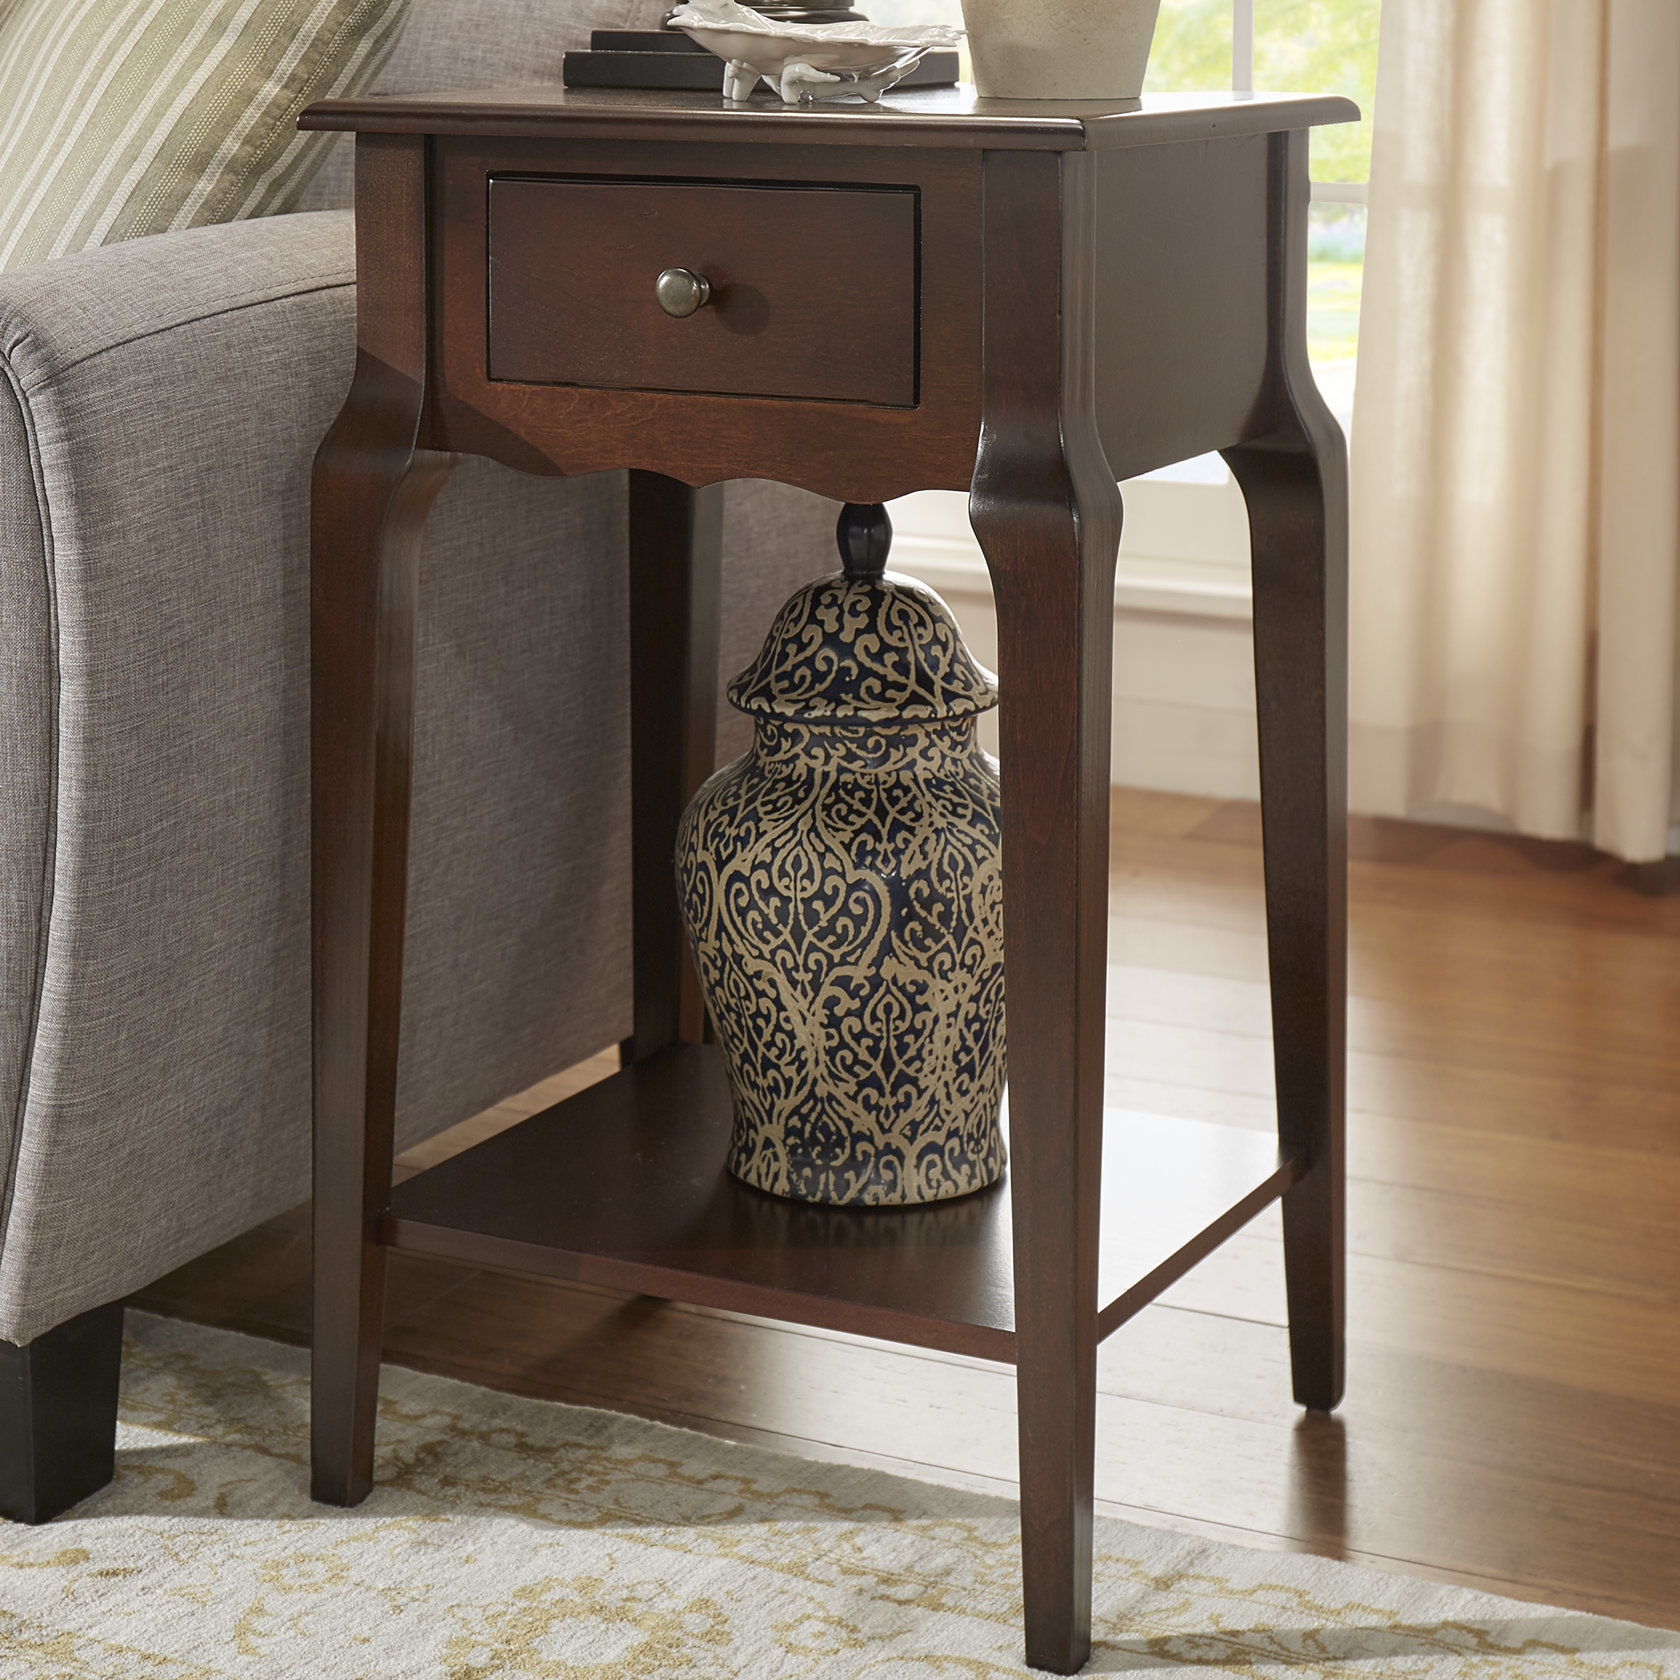 hague end table with storage reviews birch lane hadley accent drawer rolling tool cabinet blue oriental lamp small dining room furniture farmhouse set ashley pub modern gold